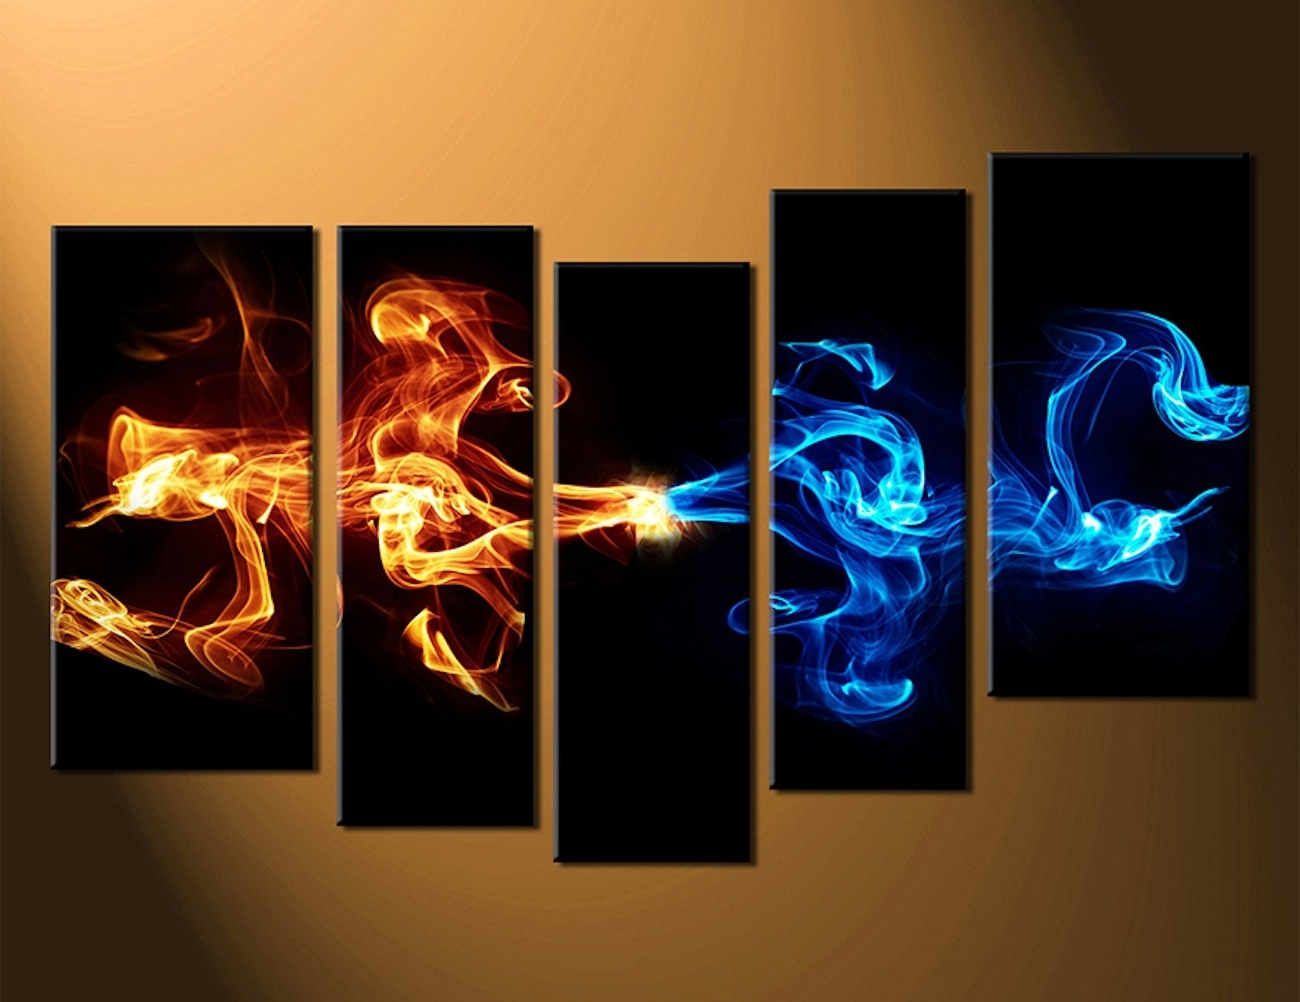 5 Piece Wall Art Inside Widely Used Abstract 5 Piece Smoke Canvas Wall Art » Gadget Flow (View 3 of 20)